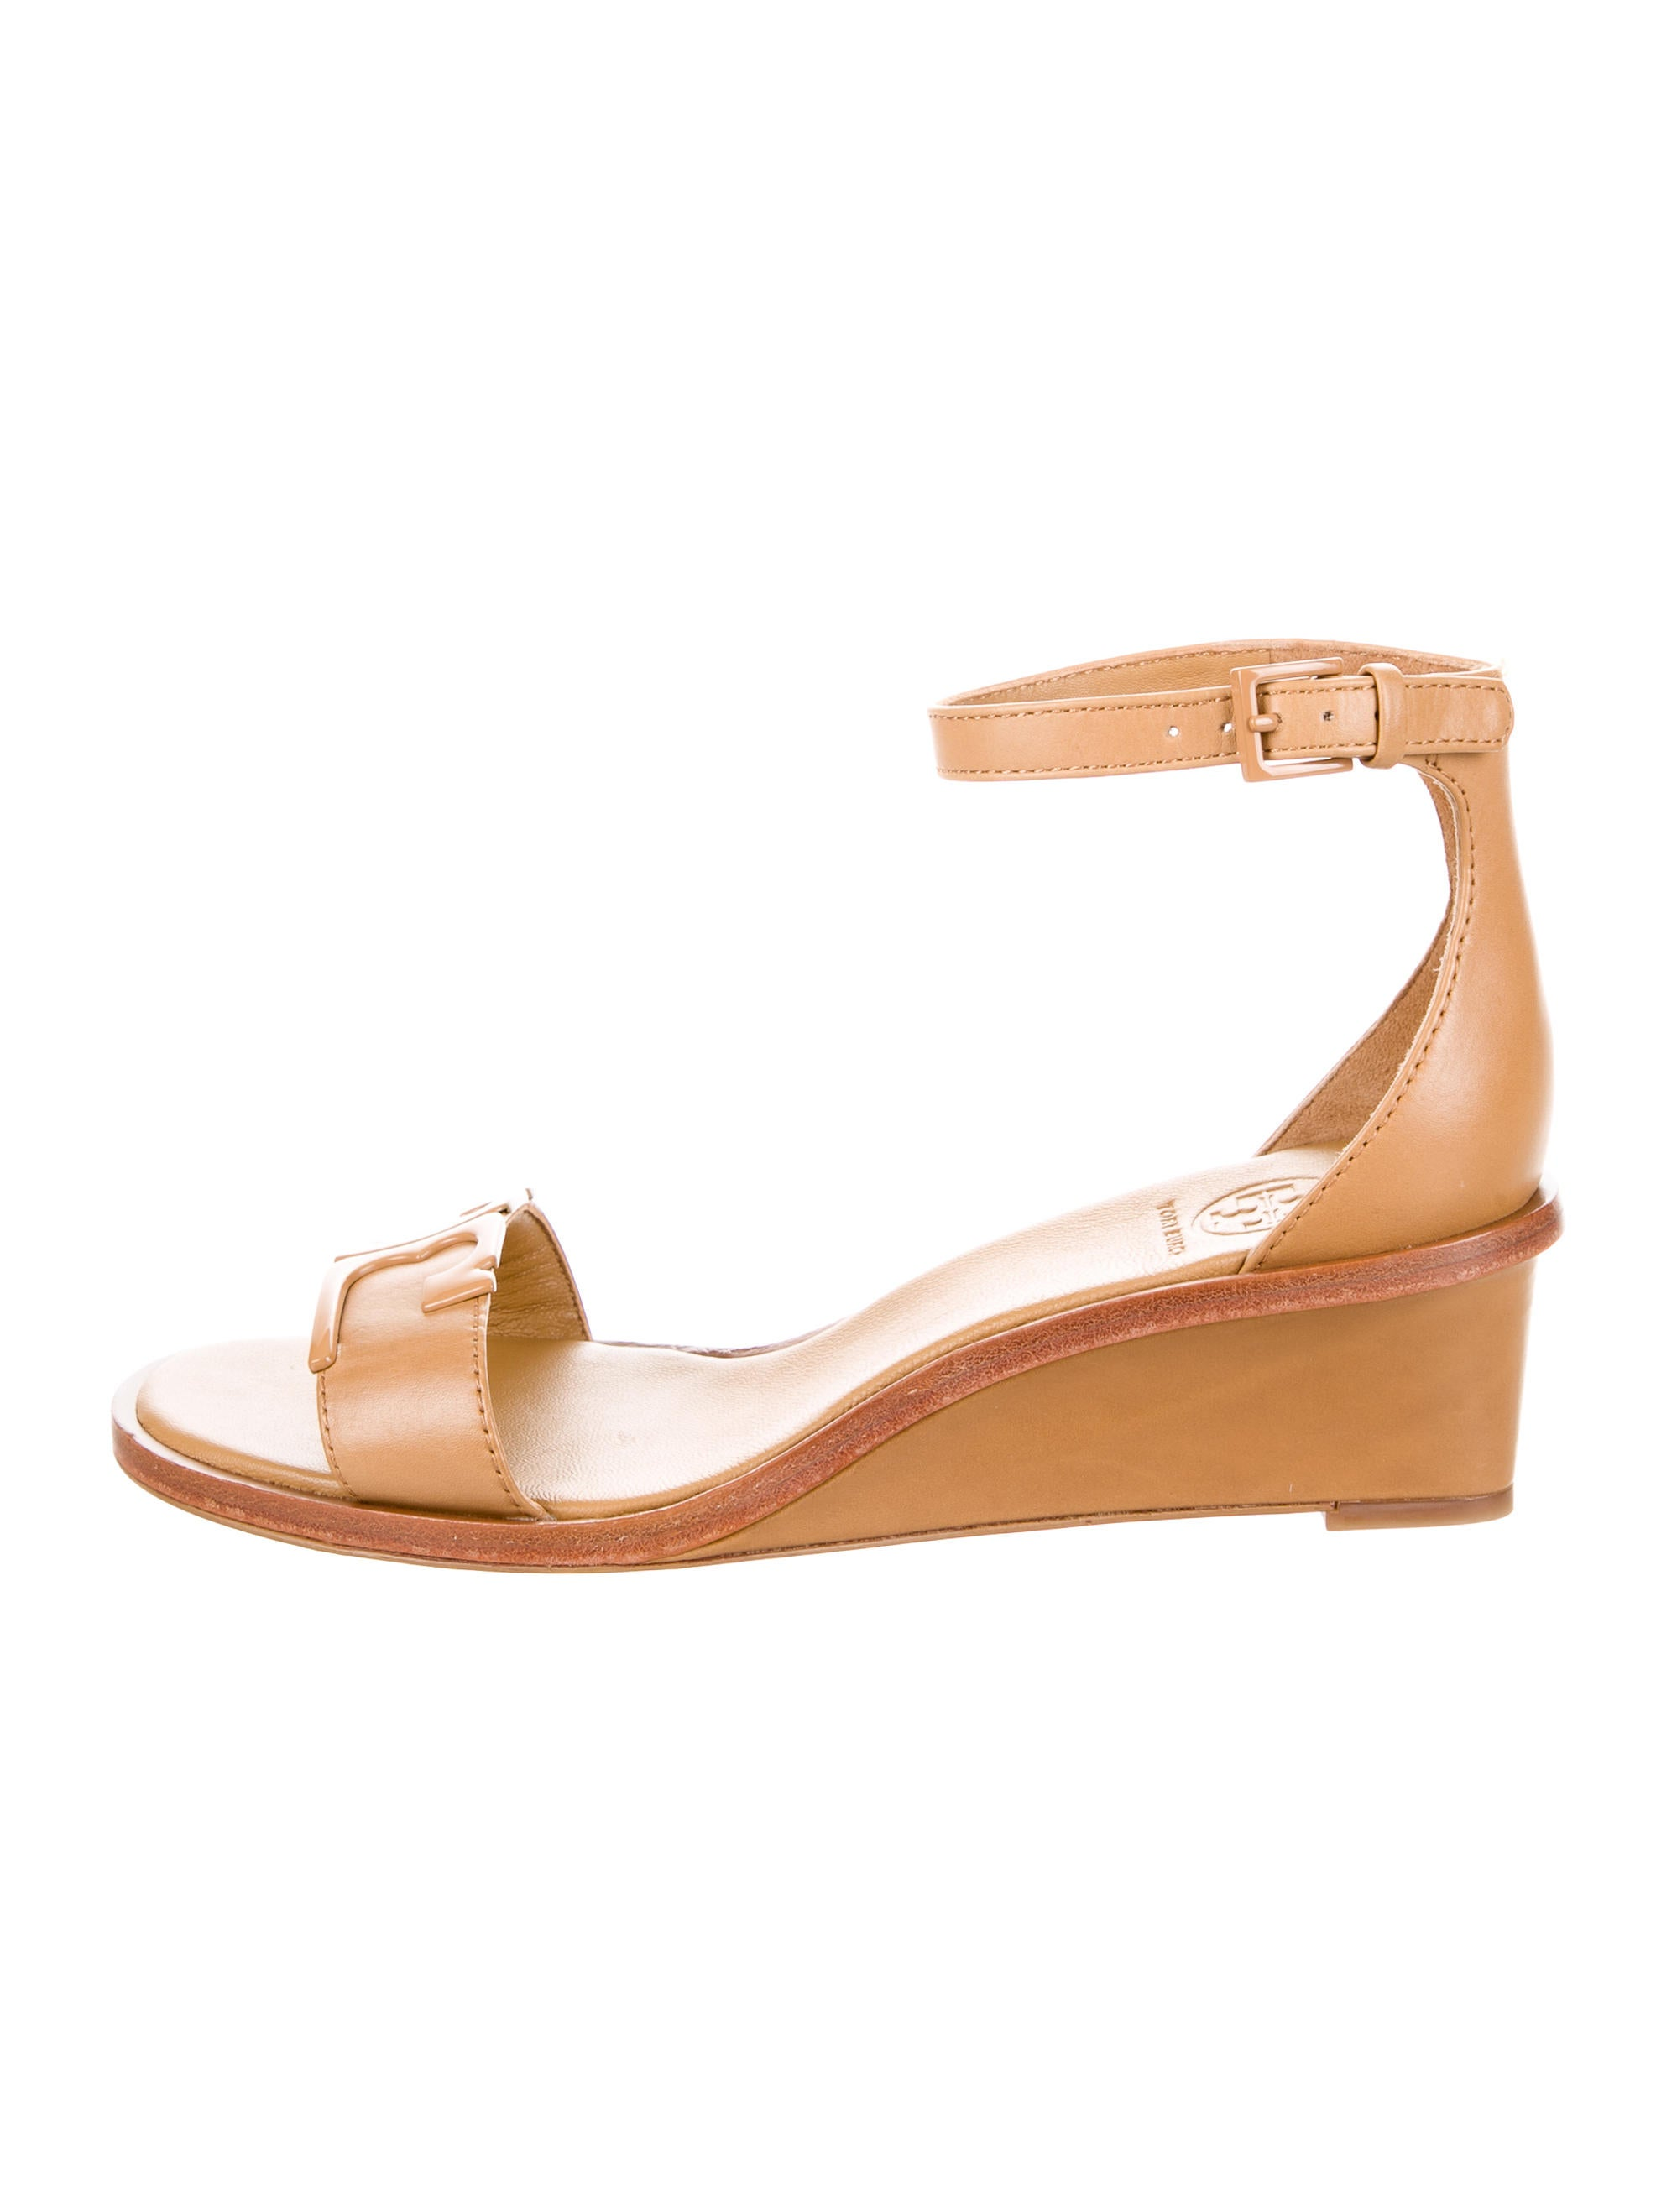 cheap comfortable Tory Burch Logo Wedge Sandals w/ Tags pictures sale online exclusive for sale 1wBHEt